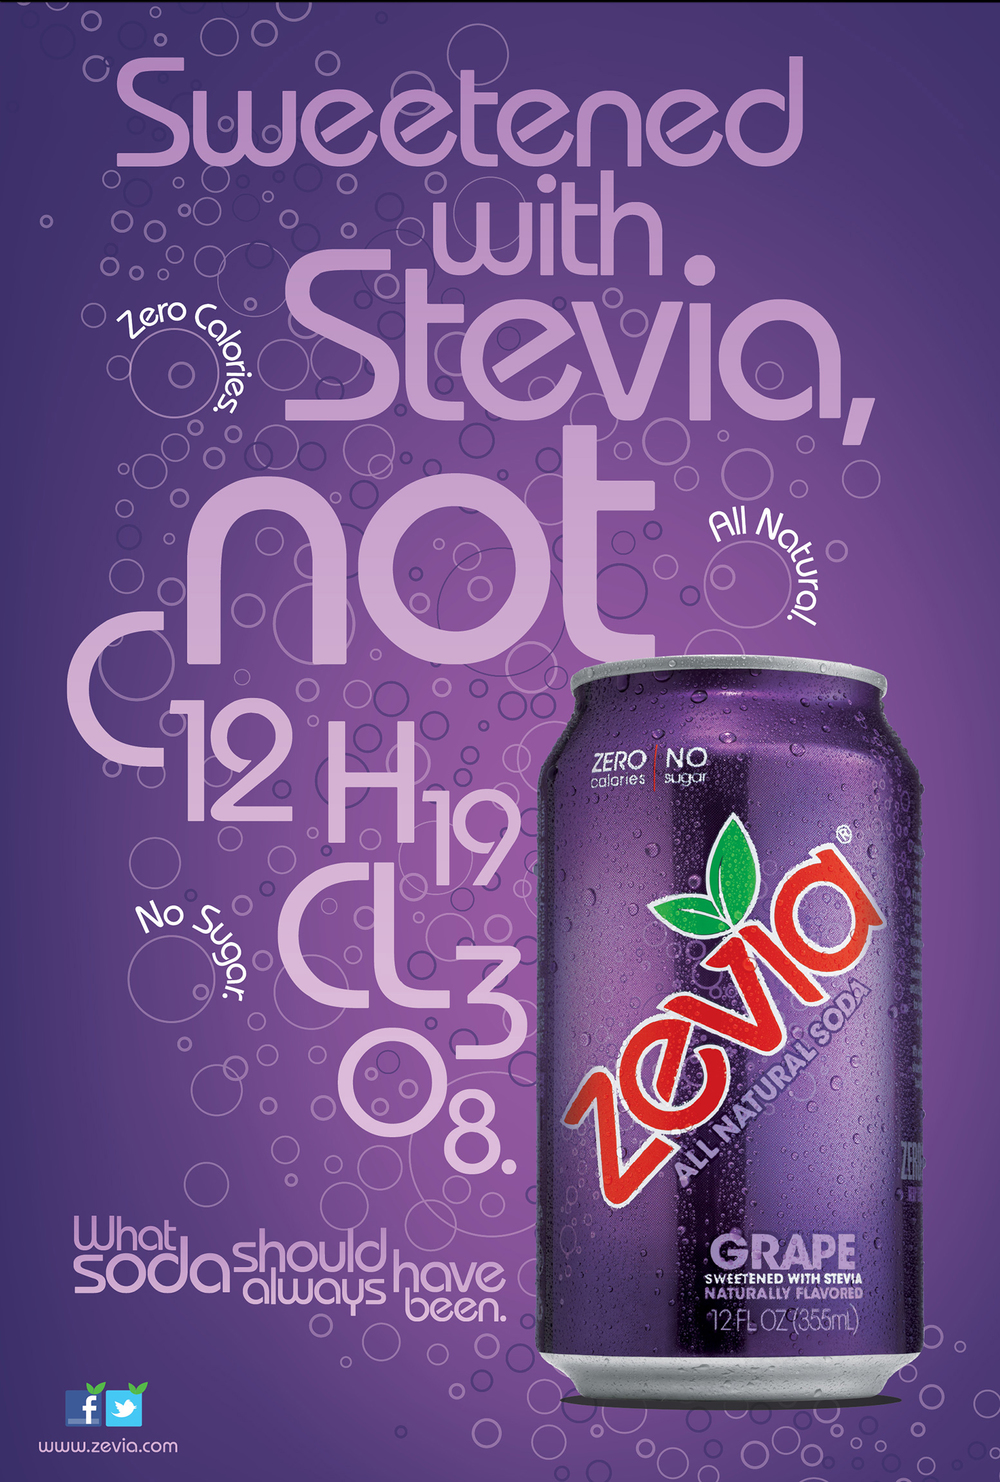 Zevia-Book-ads3.jpg